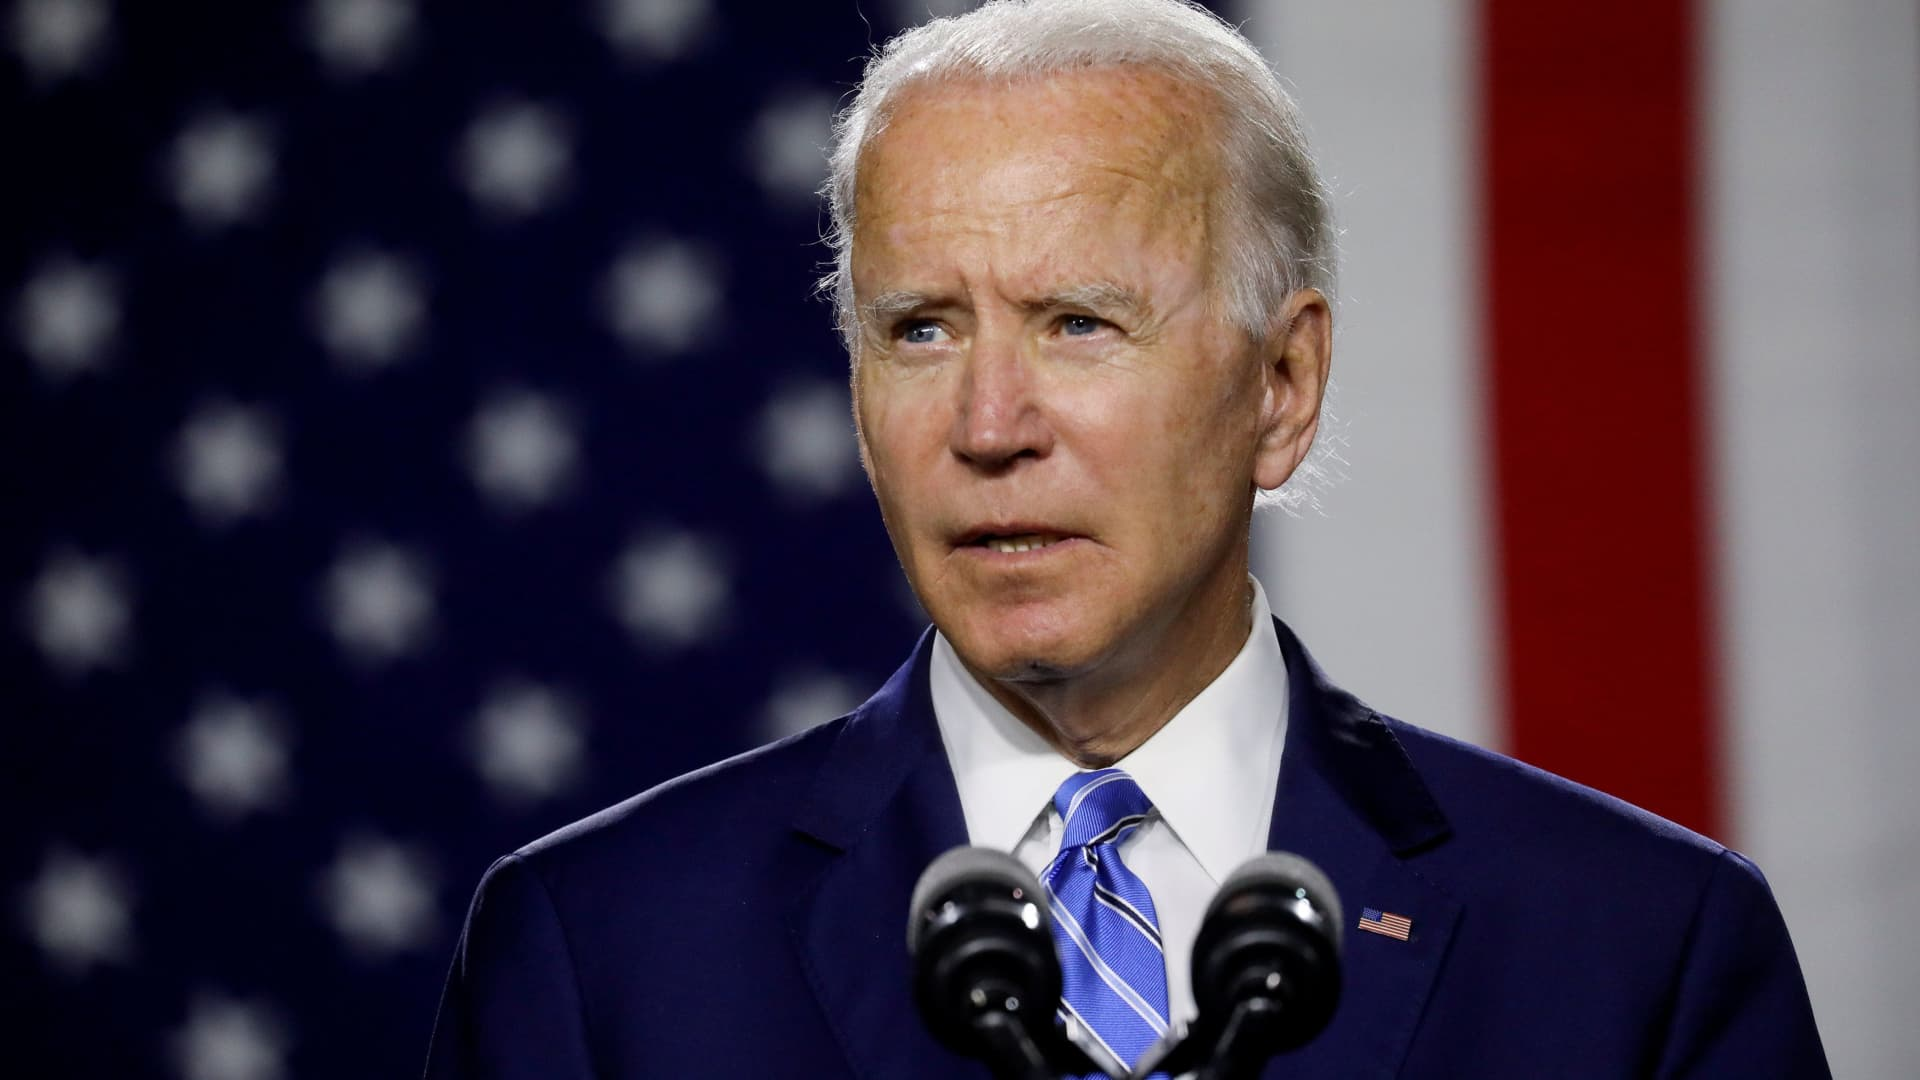 During the 2020 presidential campaign, Joe Biden promised to forgive a large chunk of the country's outstanding student loan debt.